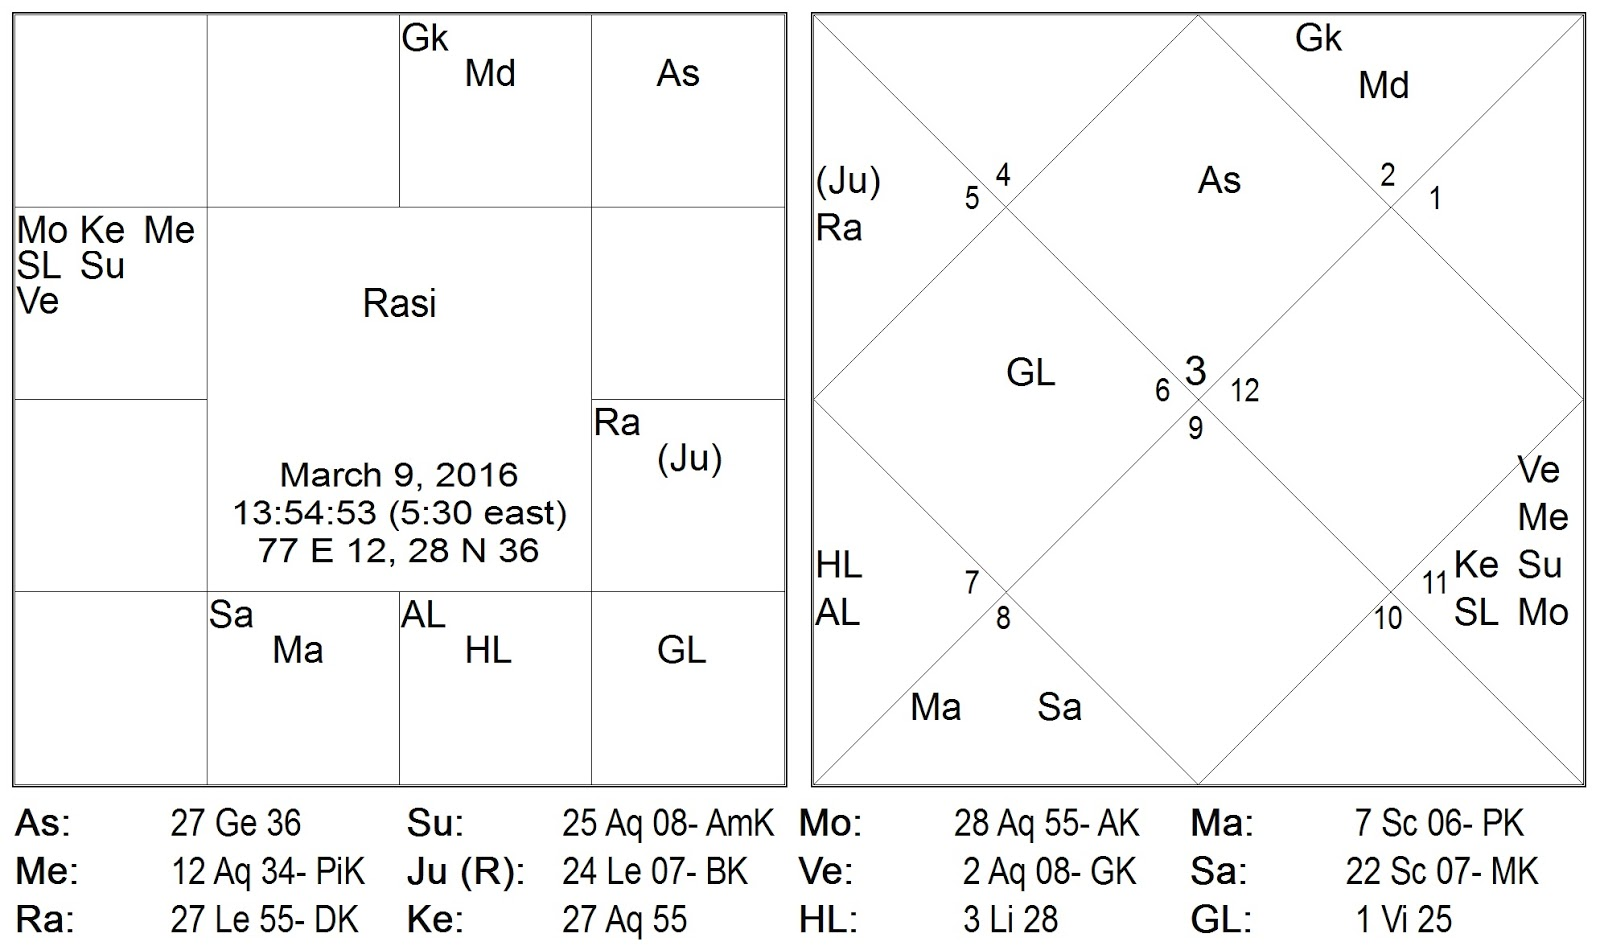 Vedic astrology consultancy research all planets in fixed signs quite clearly the signs of leo scorpio and aquarius contain all the planets in the zodiac and on march 9 even the transit moon is in aquarius nvjuhfo Choice Image